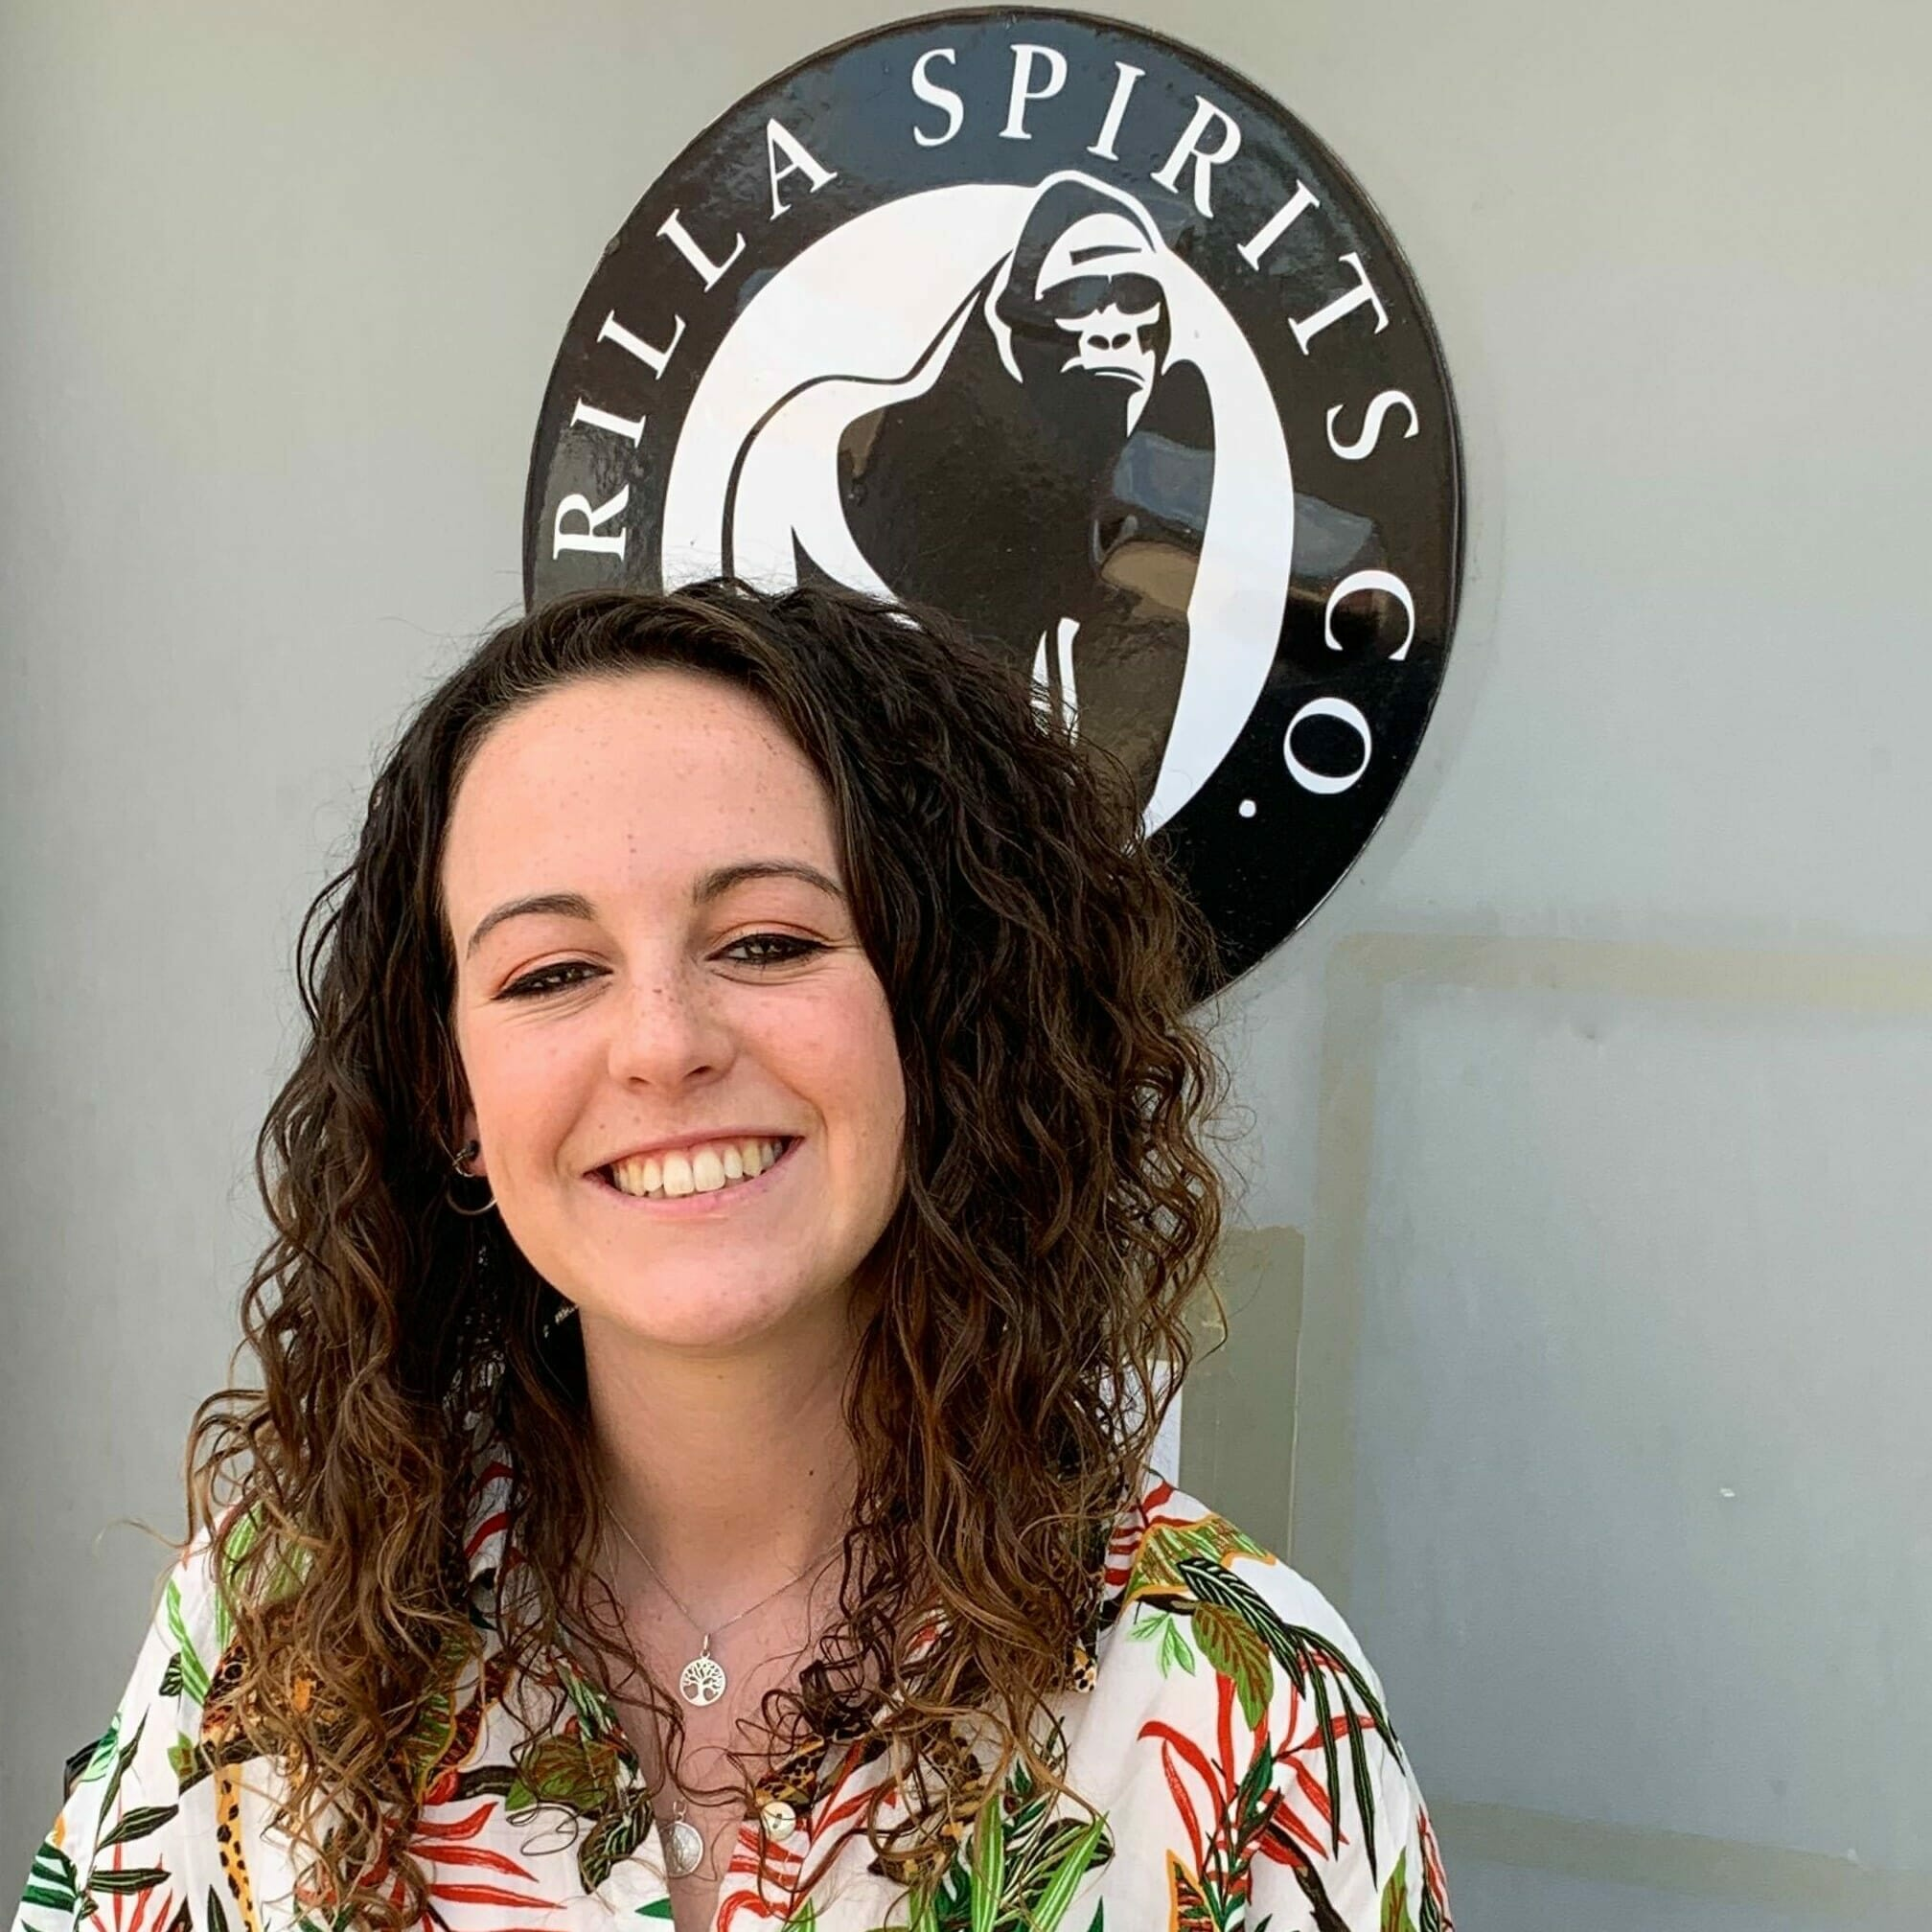 Jemima Clifton, Marketing for Gorilla Spirits